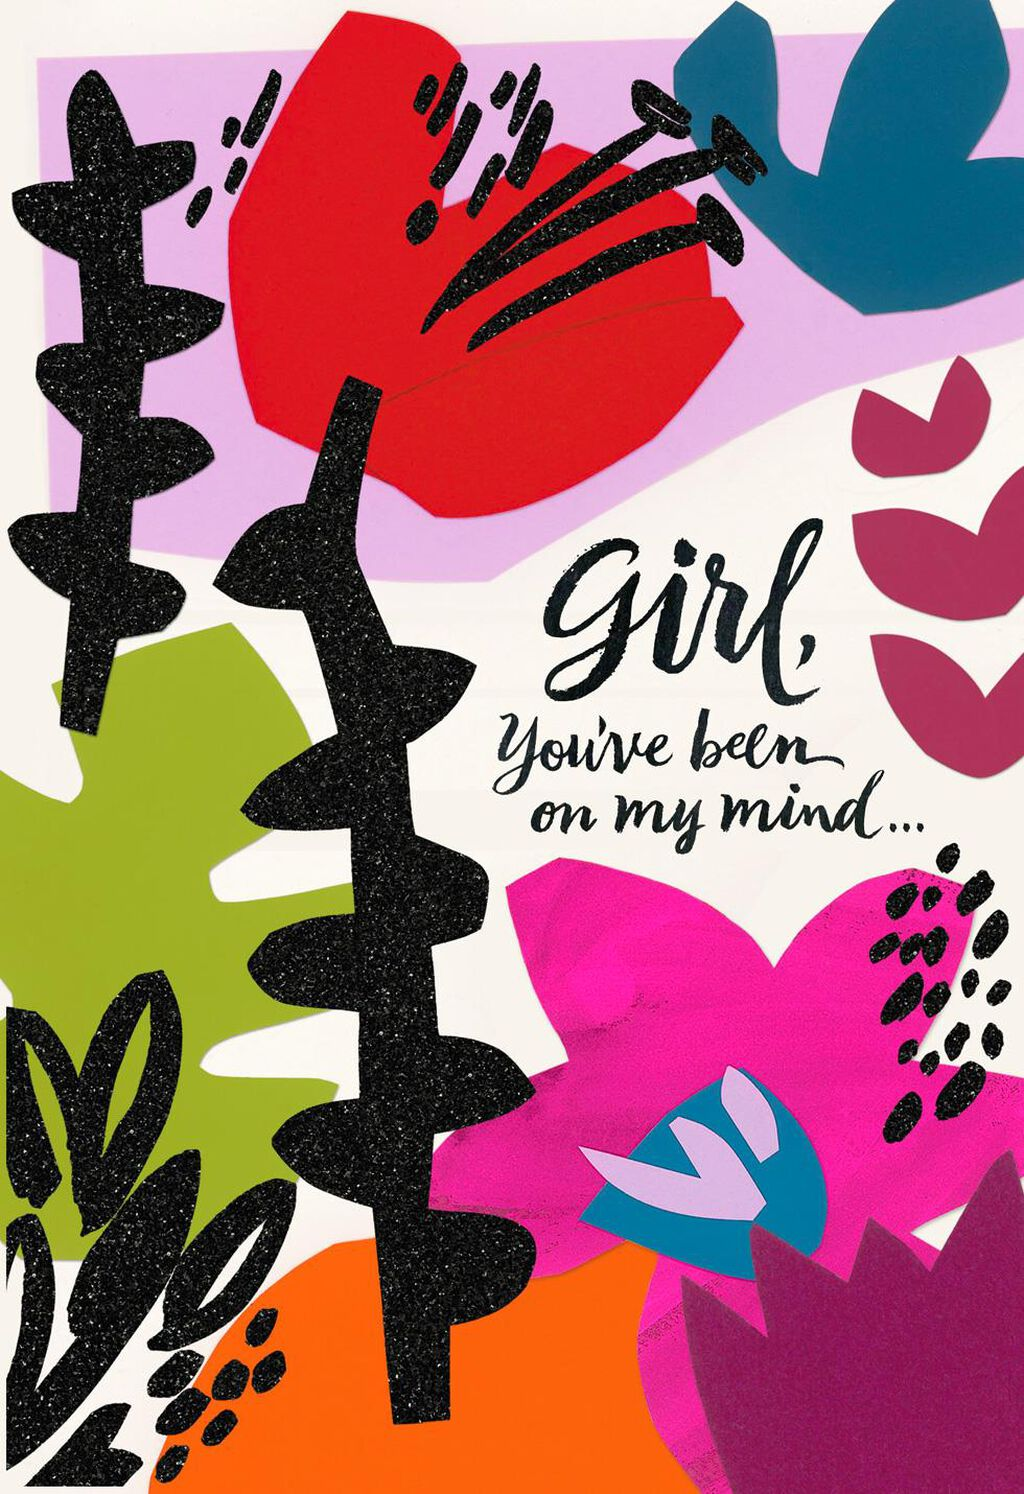 Jill Scott On My Mind Friendship Card For Her Greeting Cards